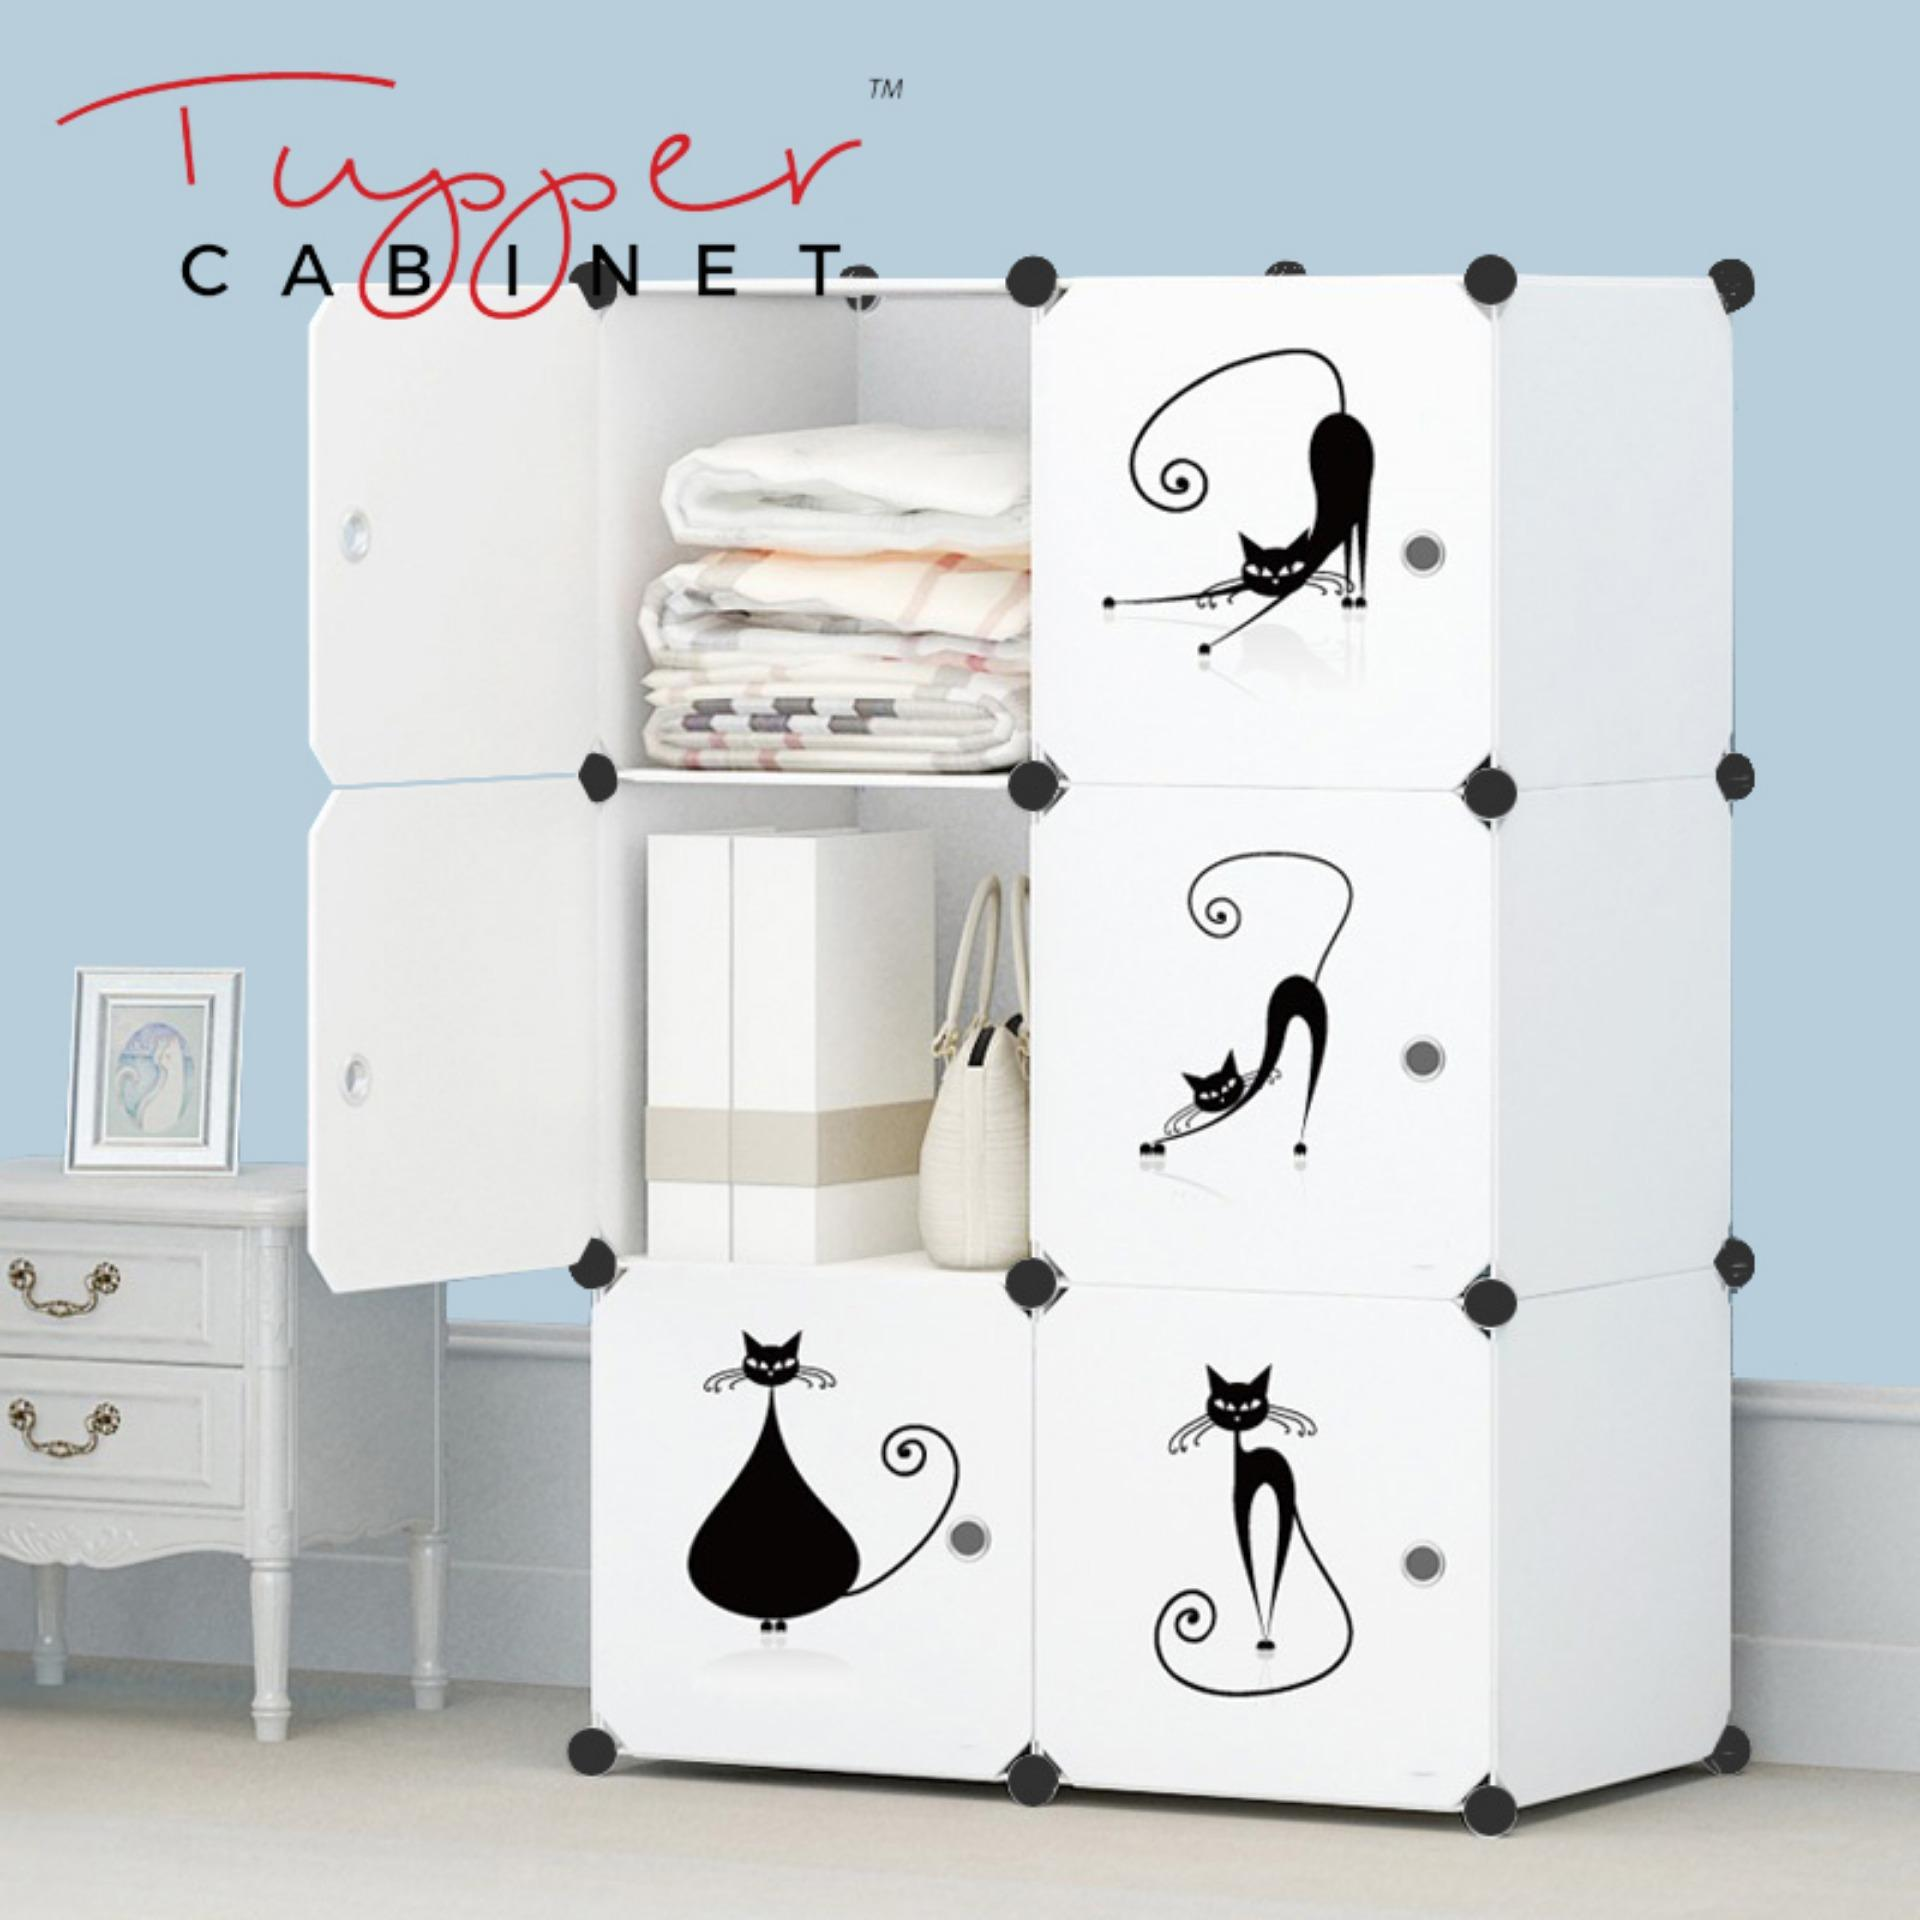 Sale Tupper Cabinet 6 Cubes Lazy Cat Diy Storage Cabinet Pure White Singapore Cheap